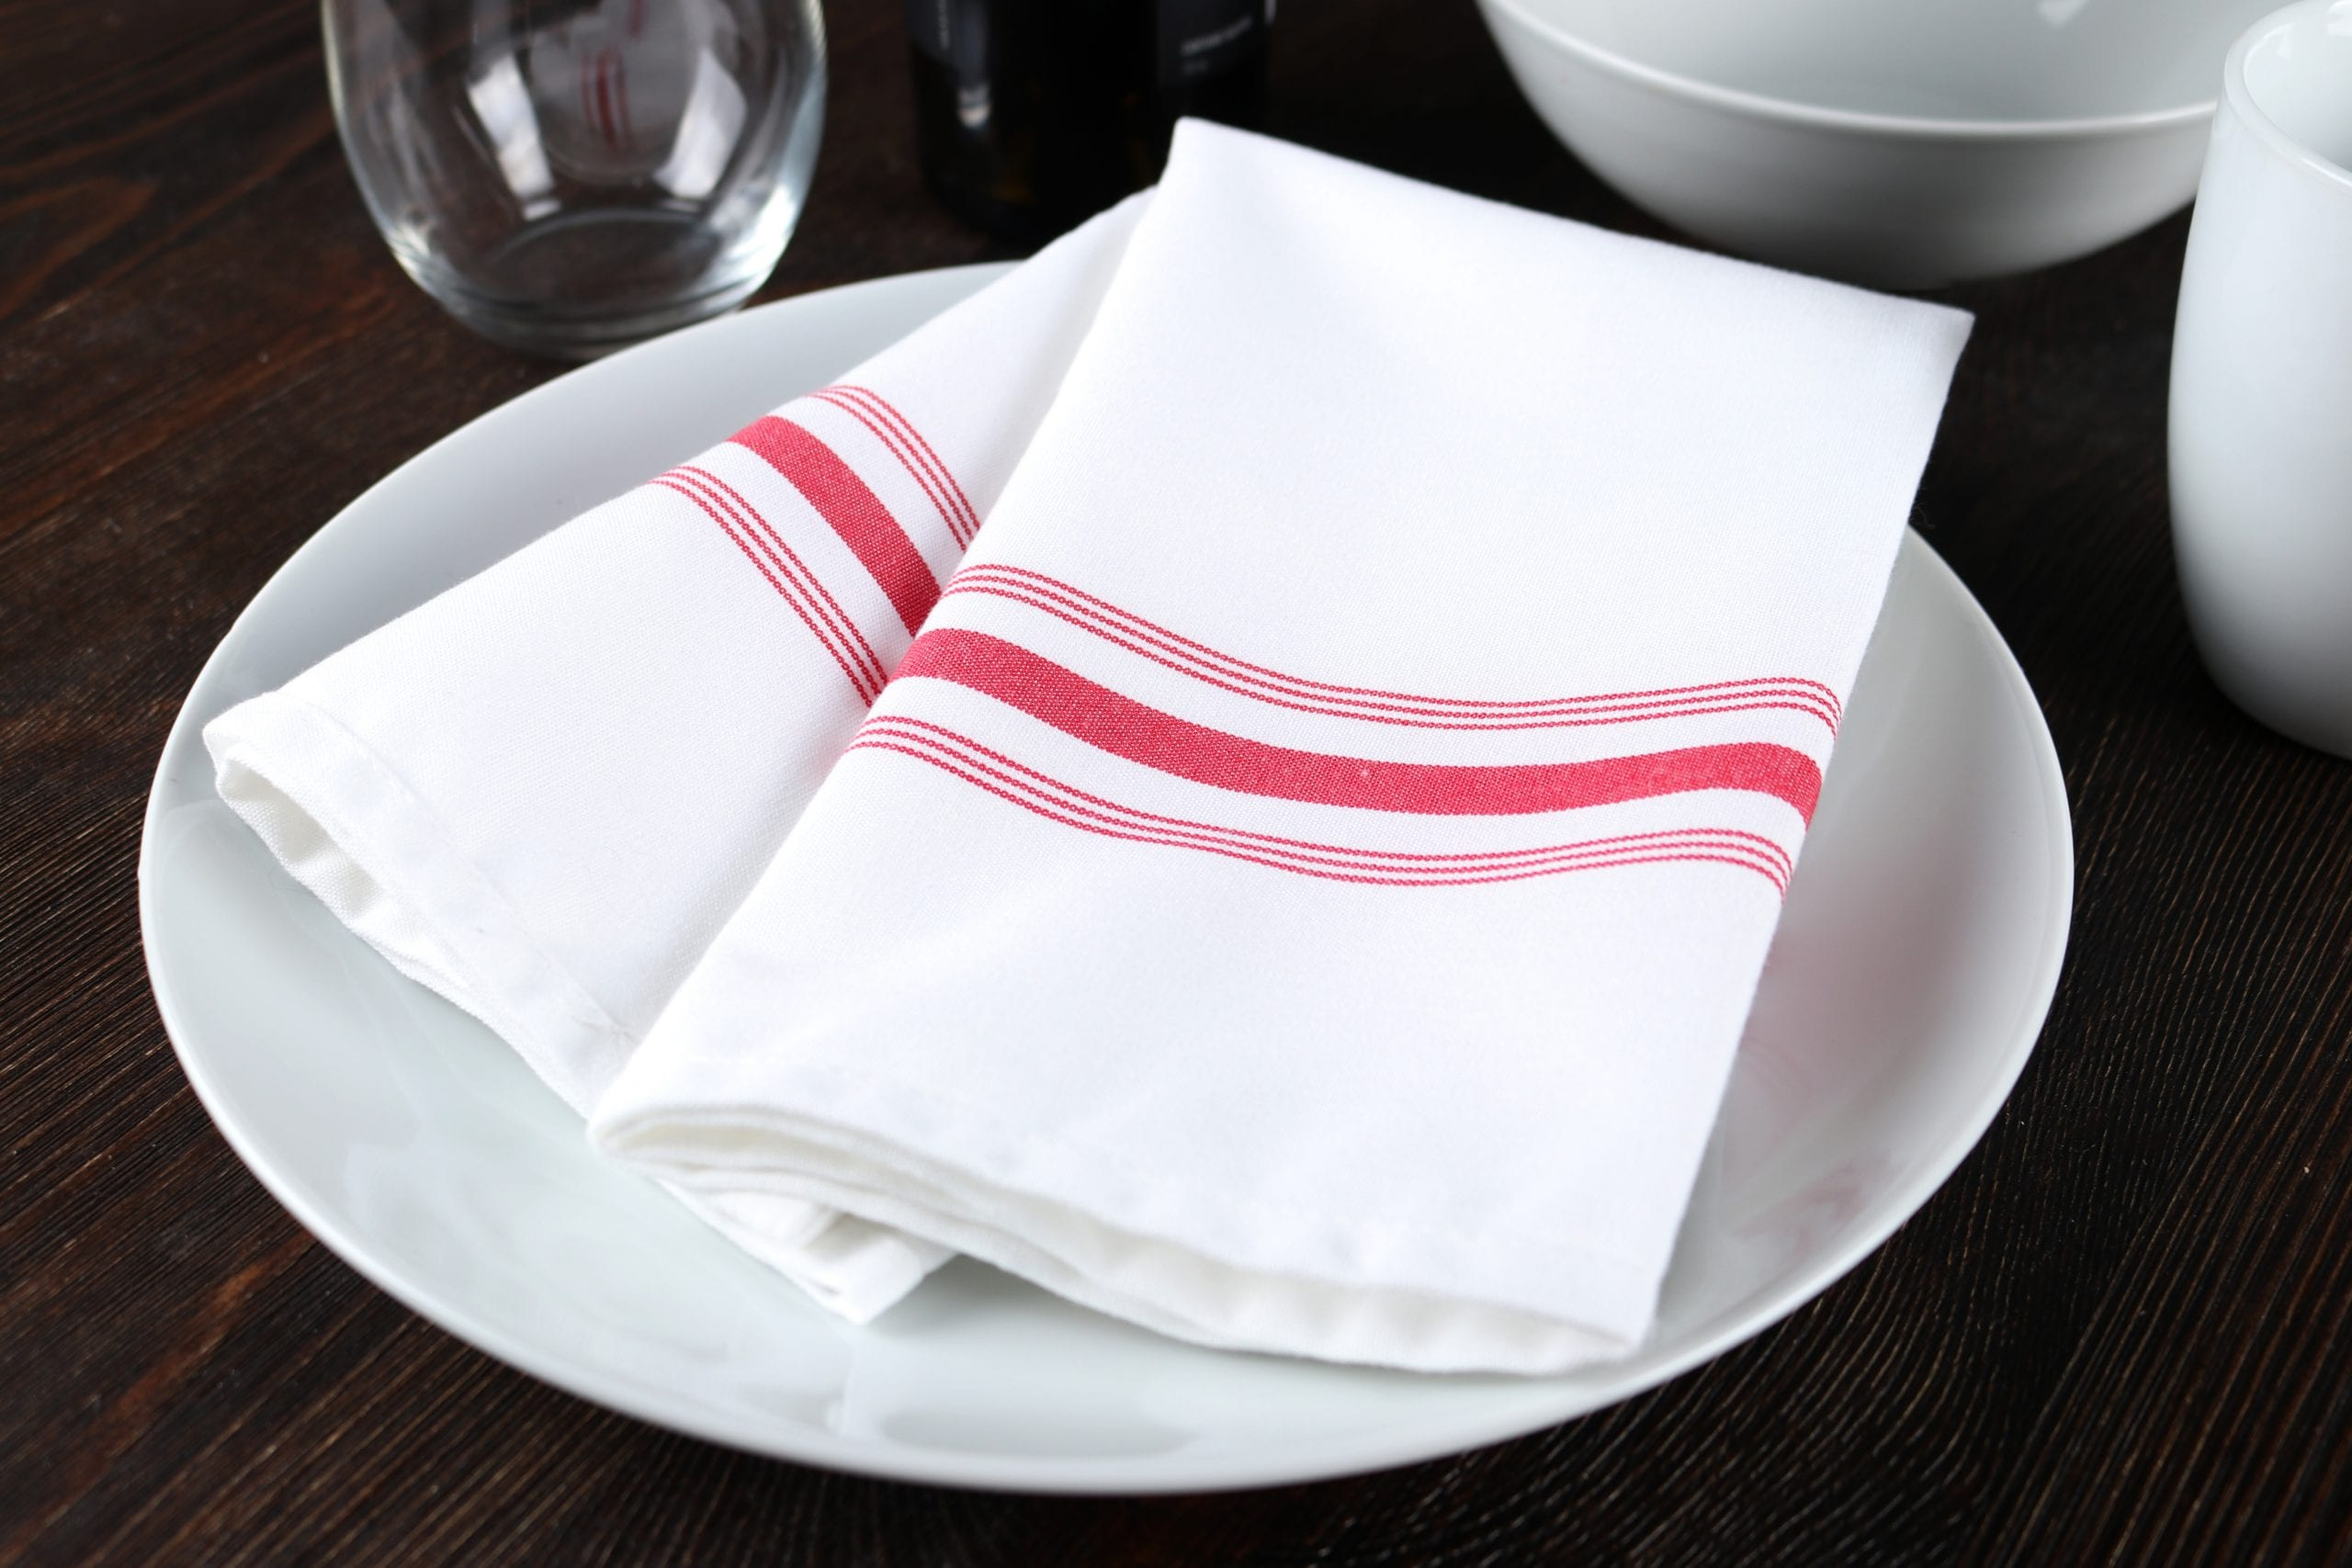 Cloth Napkins Offer Style, Comfort, and Less Waste